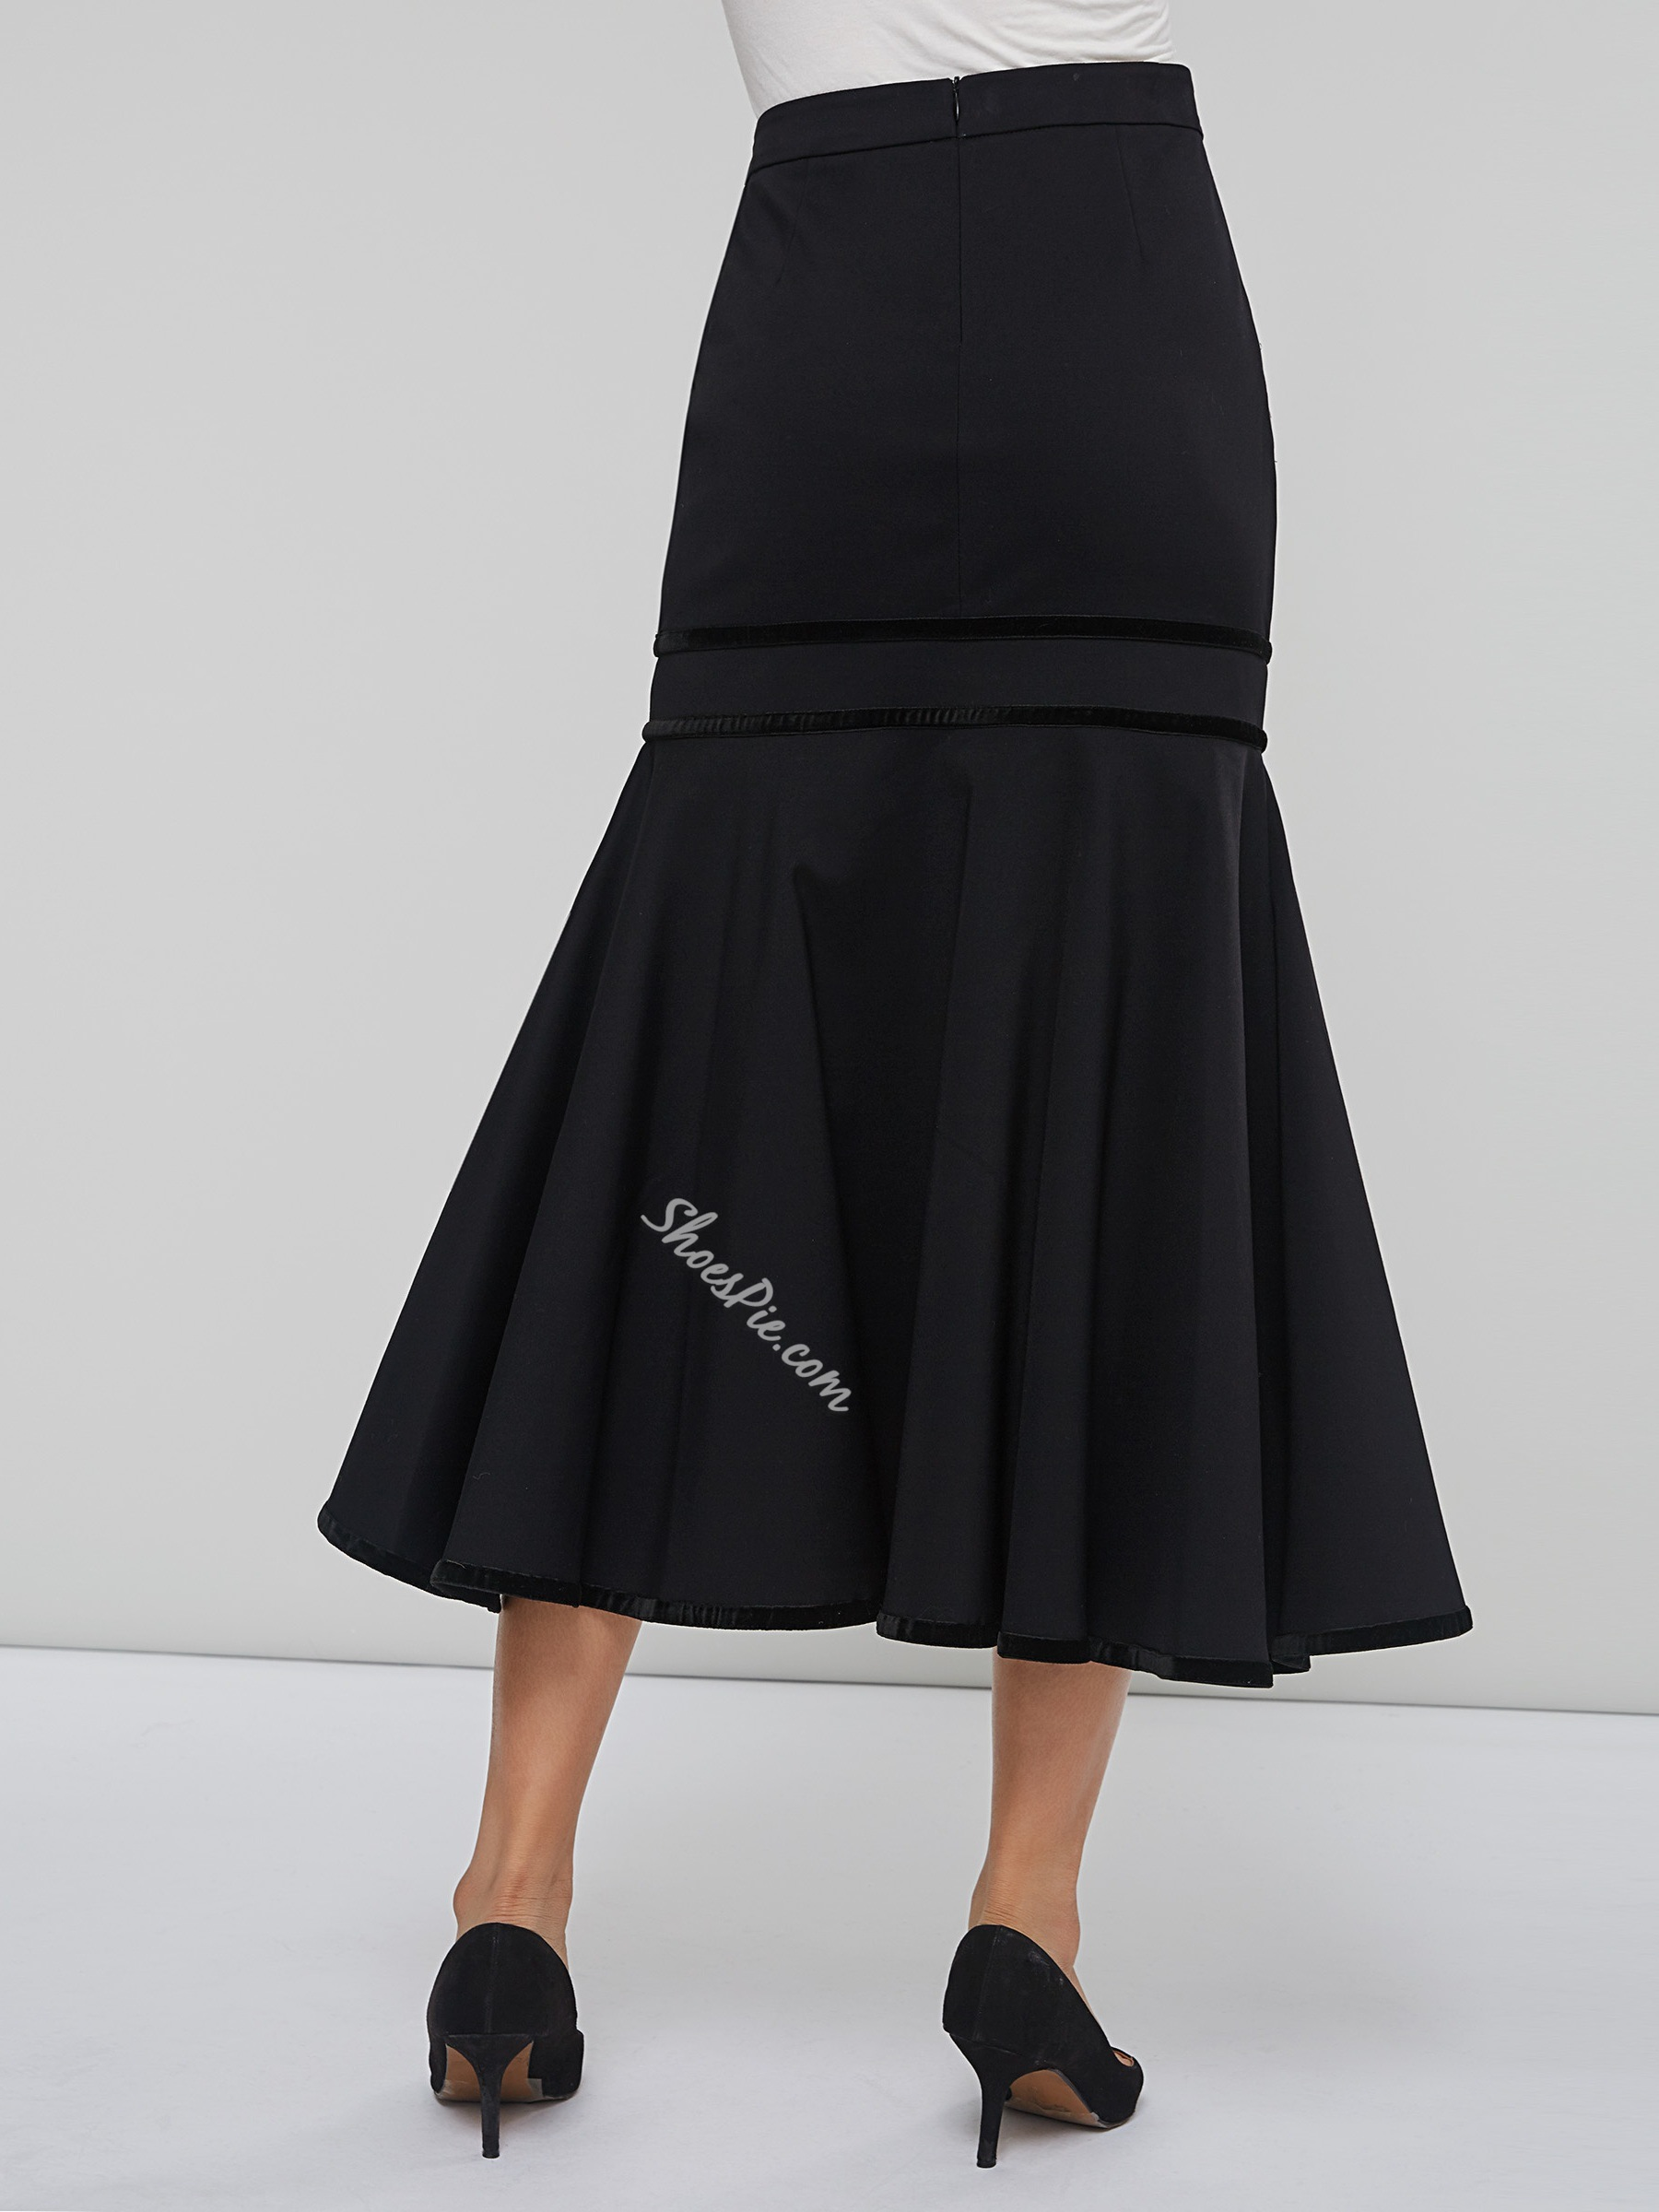 Asymmetric Mermaid Knee-Length Women's Skirt